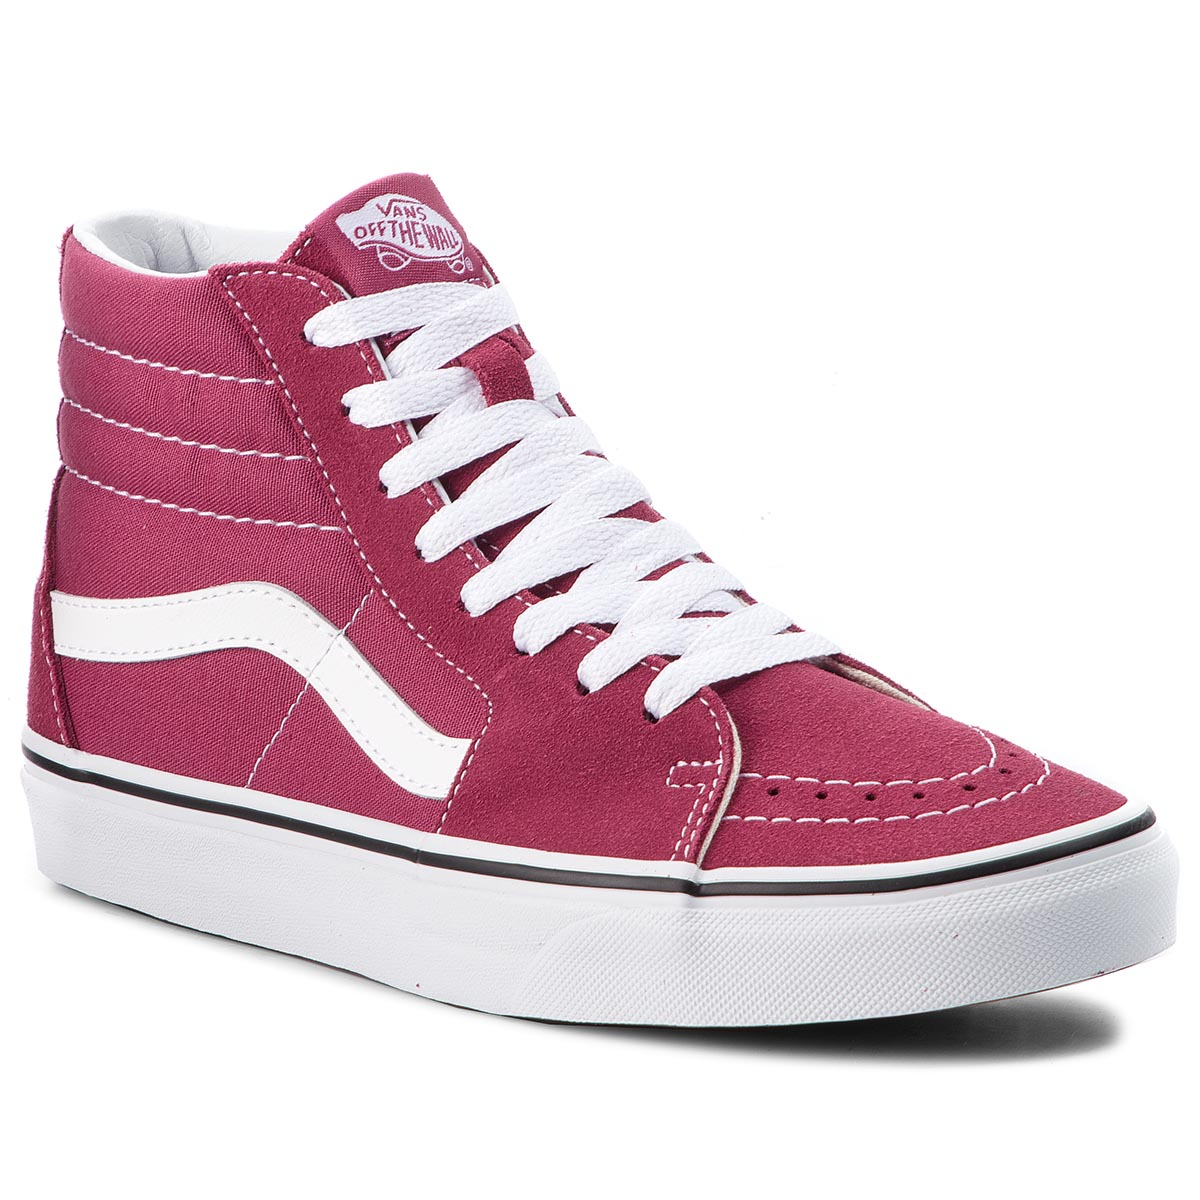 Sneakers VANS - Sk8-Hi VN0A38GEU64 Dry Rose/True White